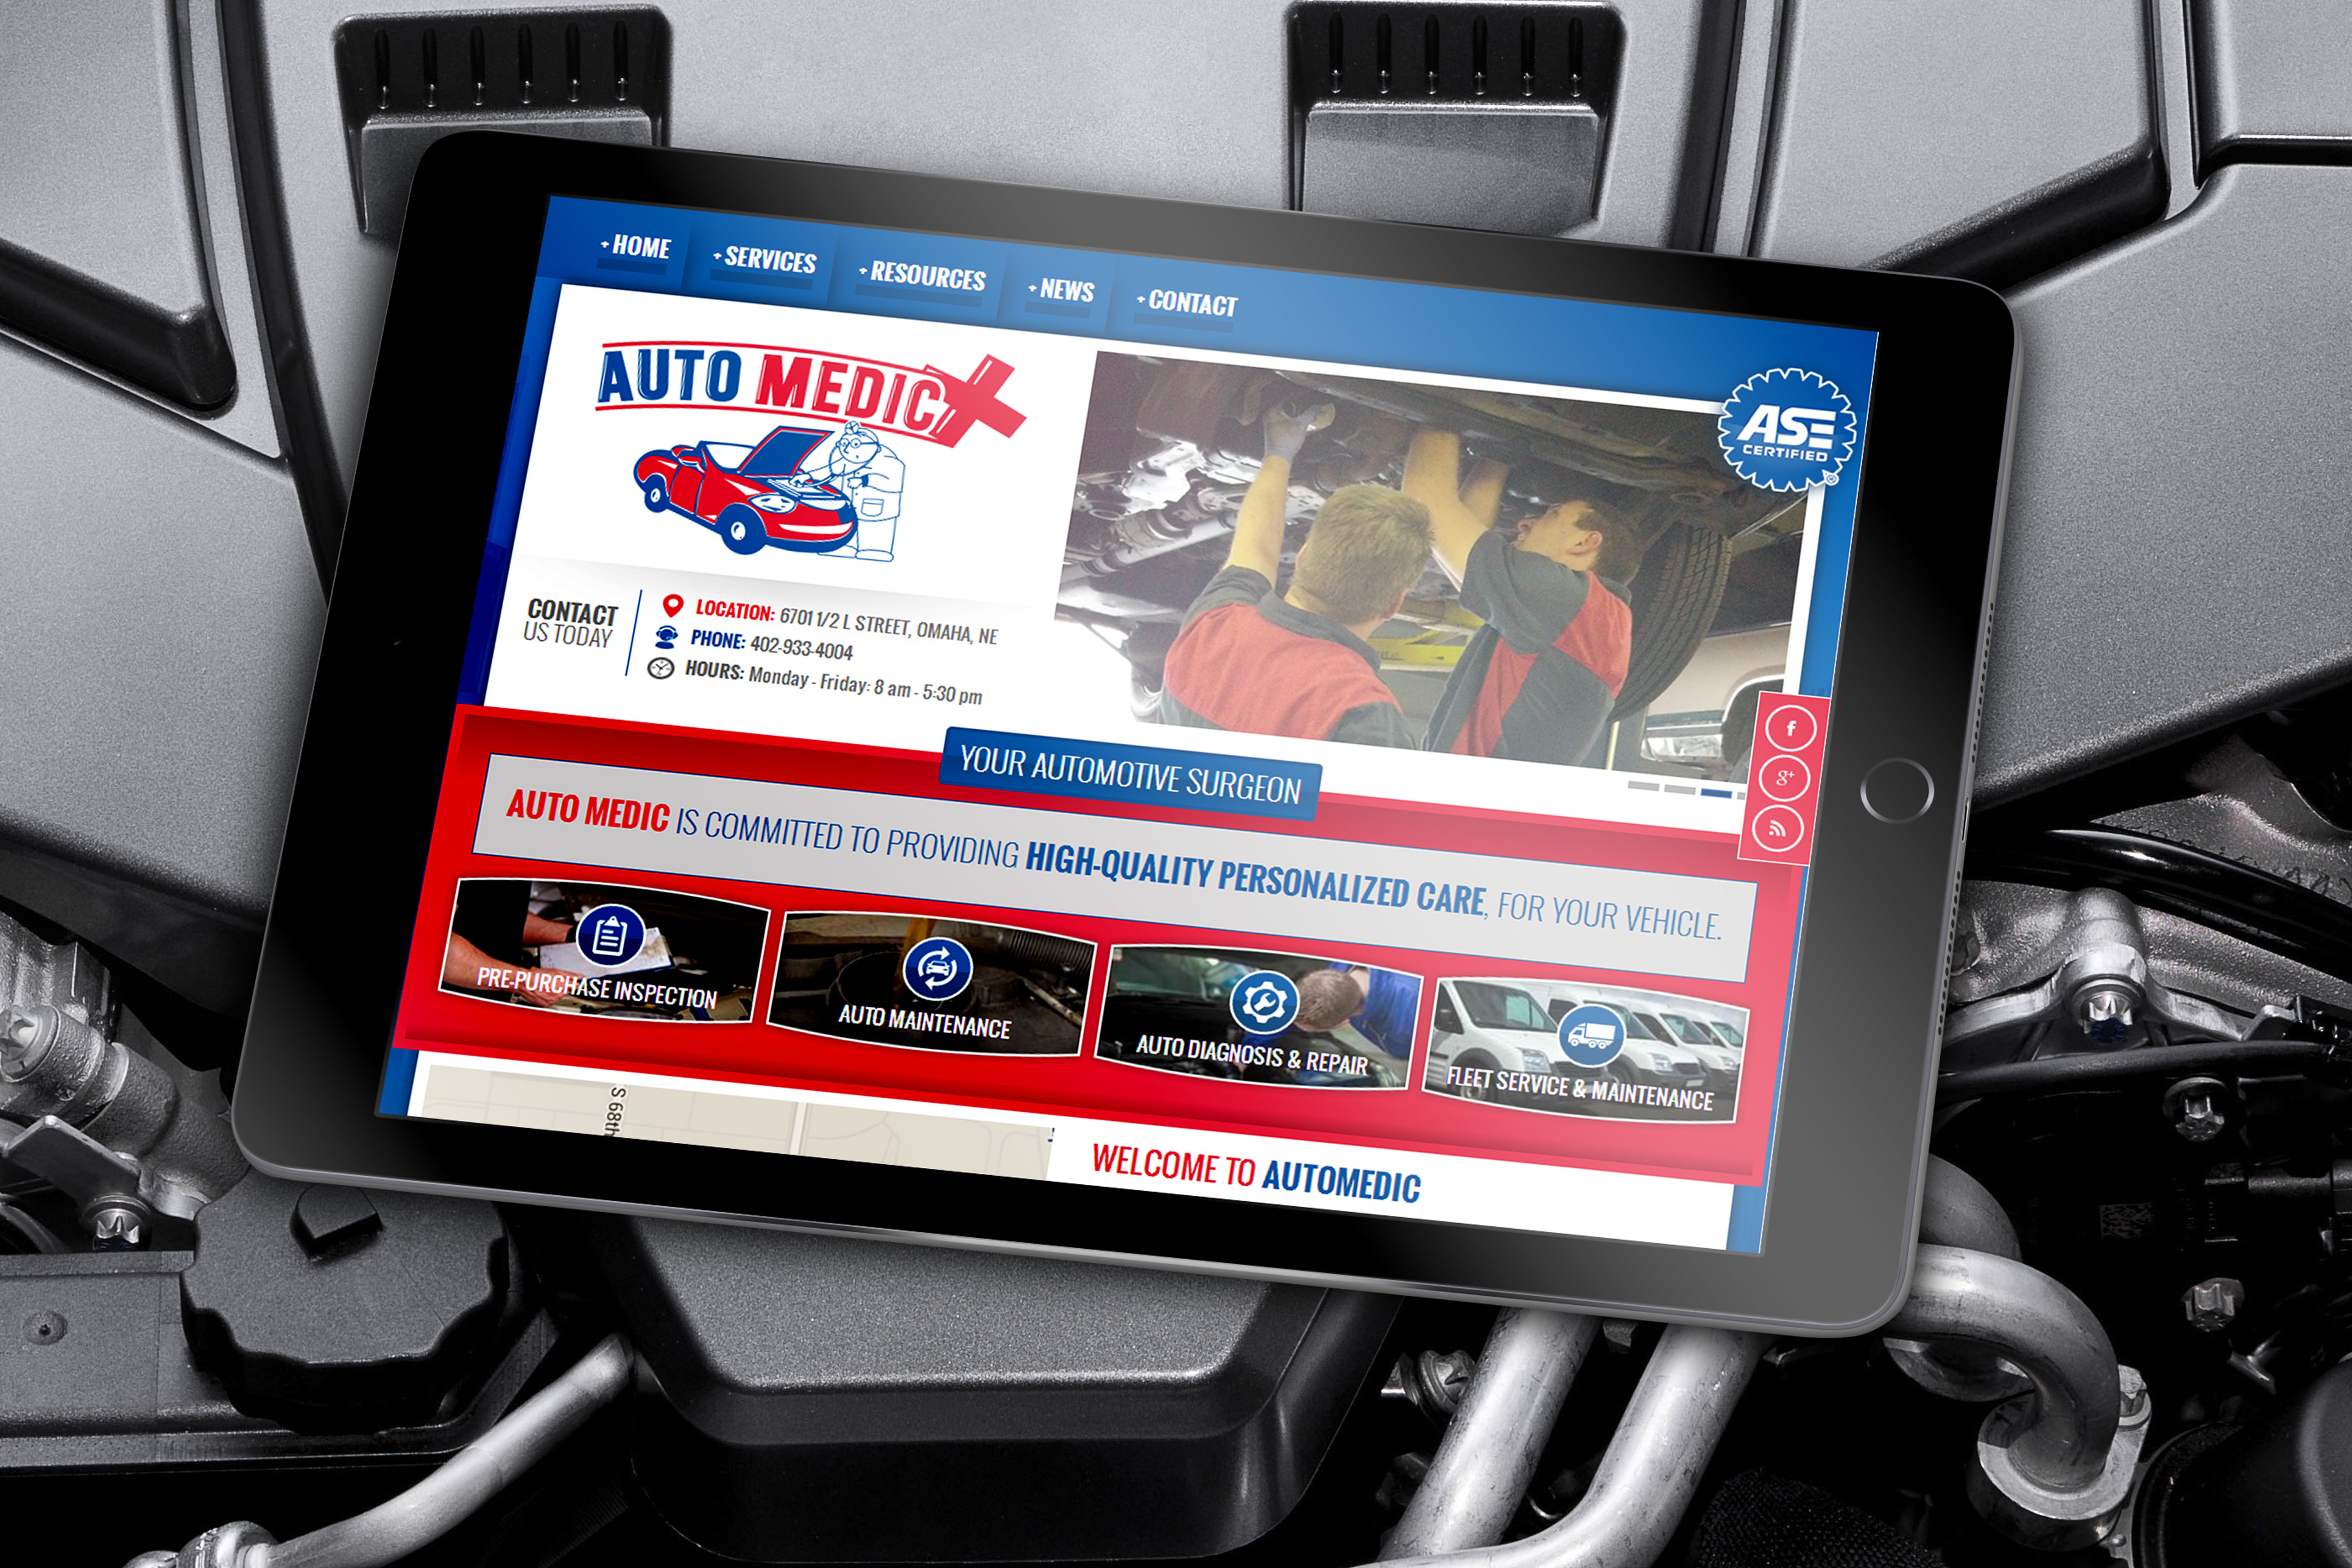 Website Design example by Mosaic Visuals Design in Omaha, NE for Auto Medic